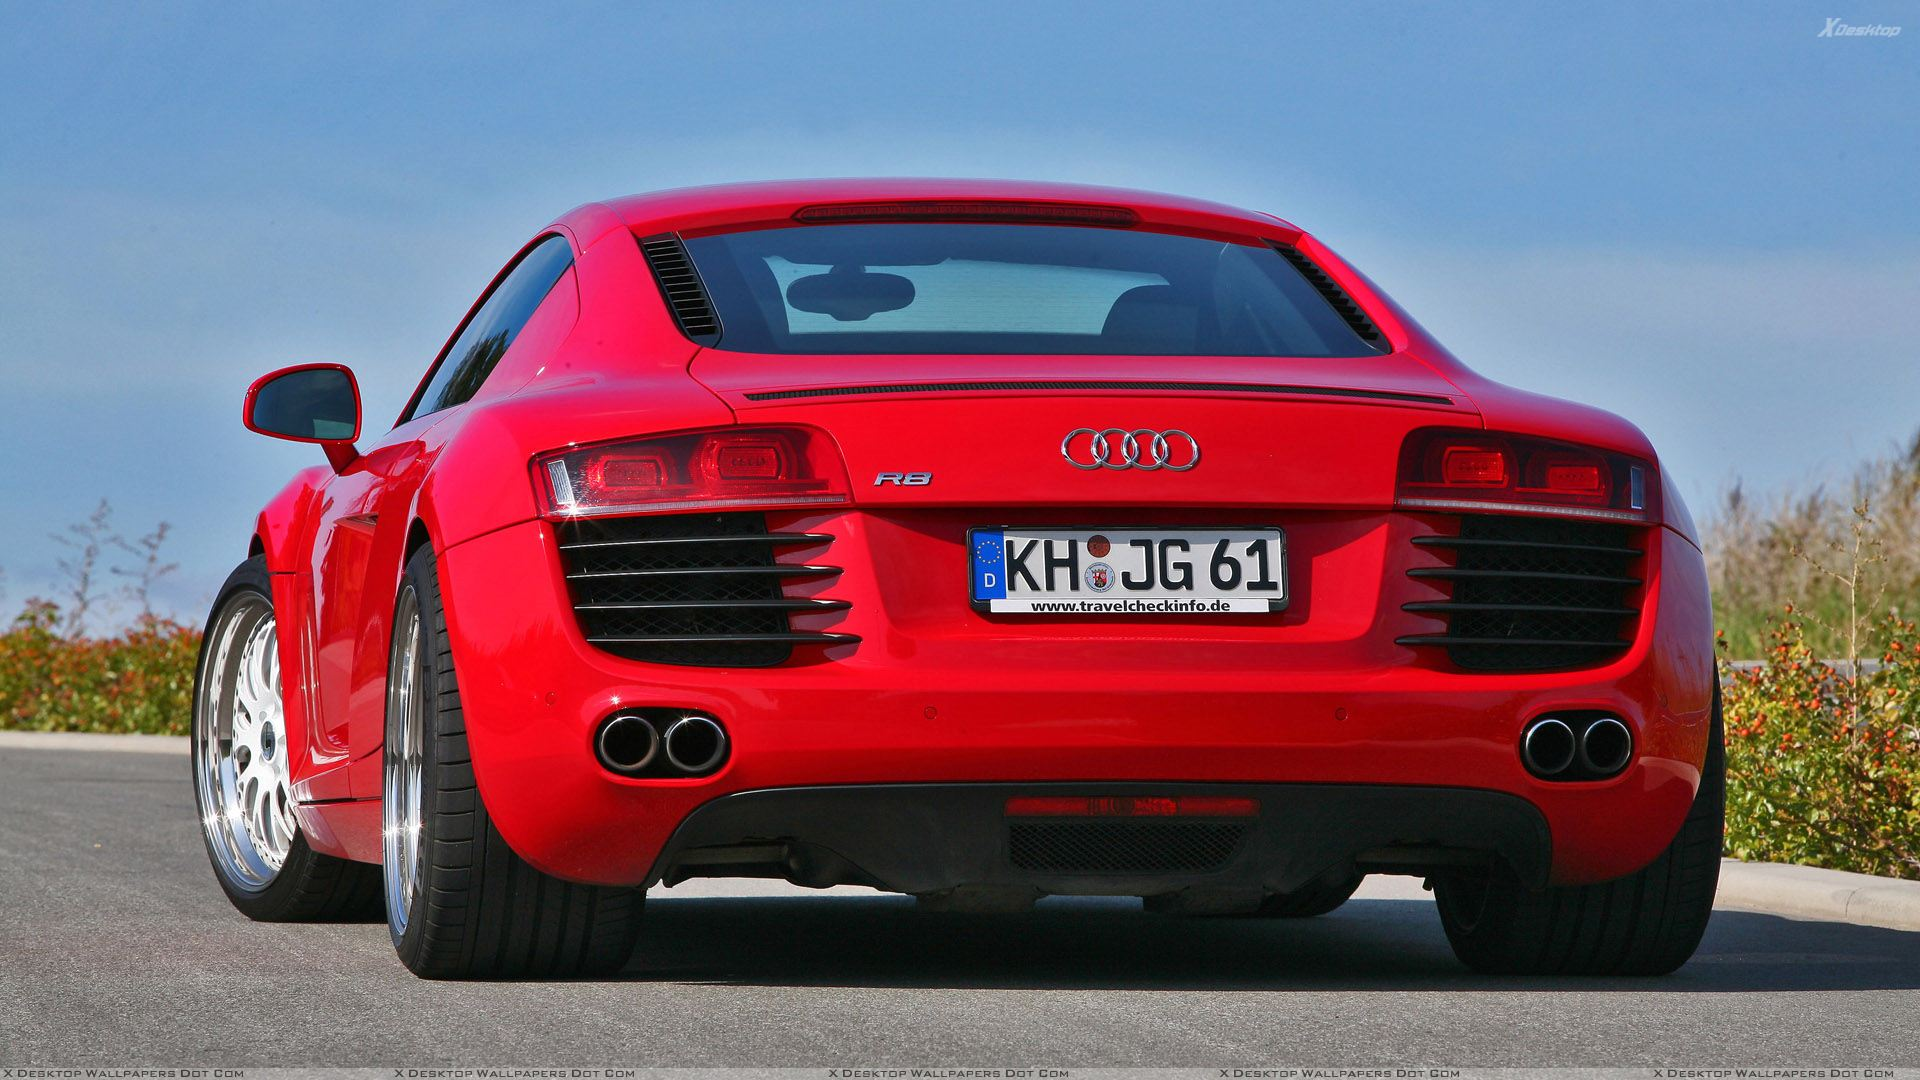 You Are Viewing Wallpaper Titled Back Pose Of Red Mfk Autosport Audi R8